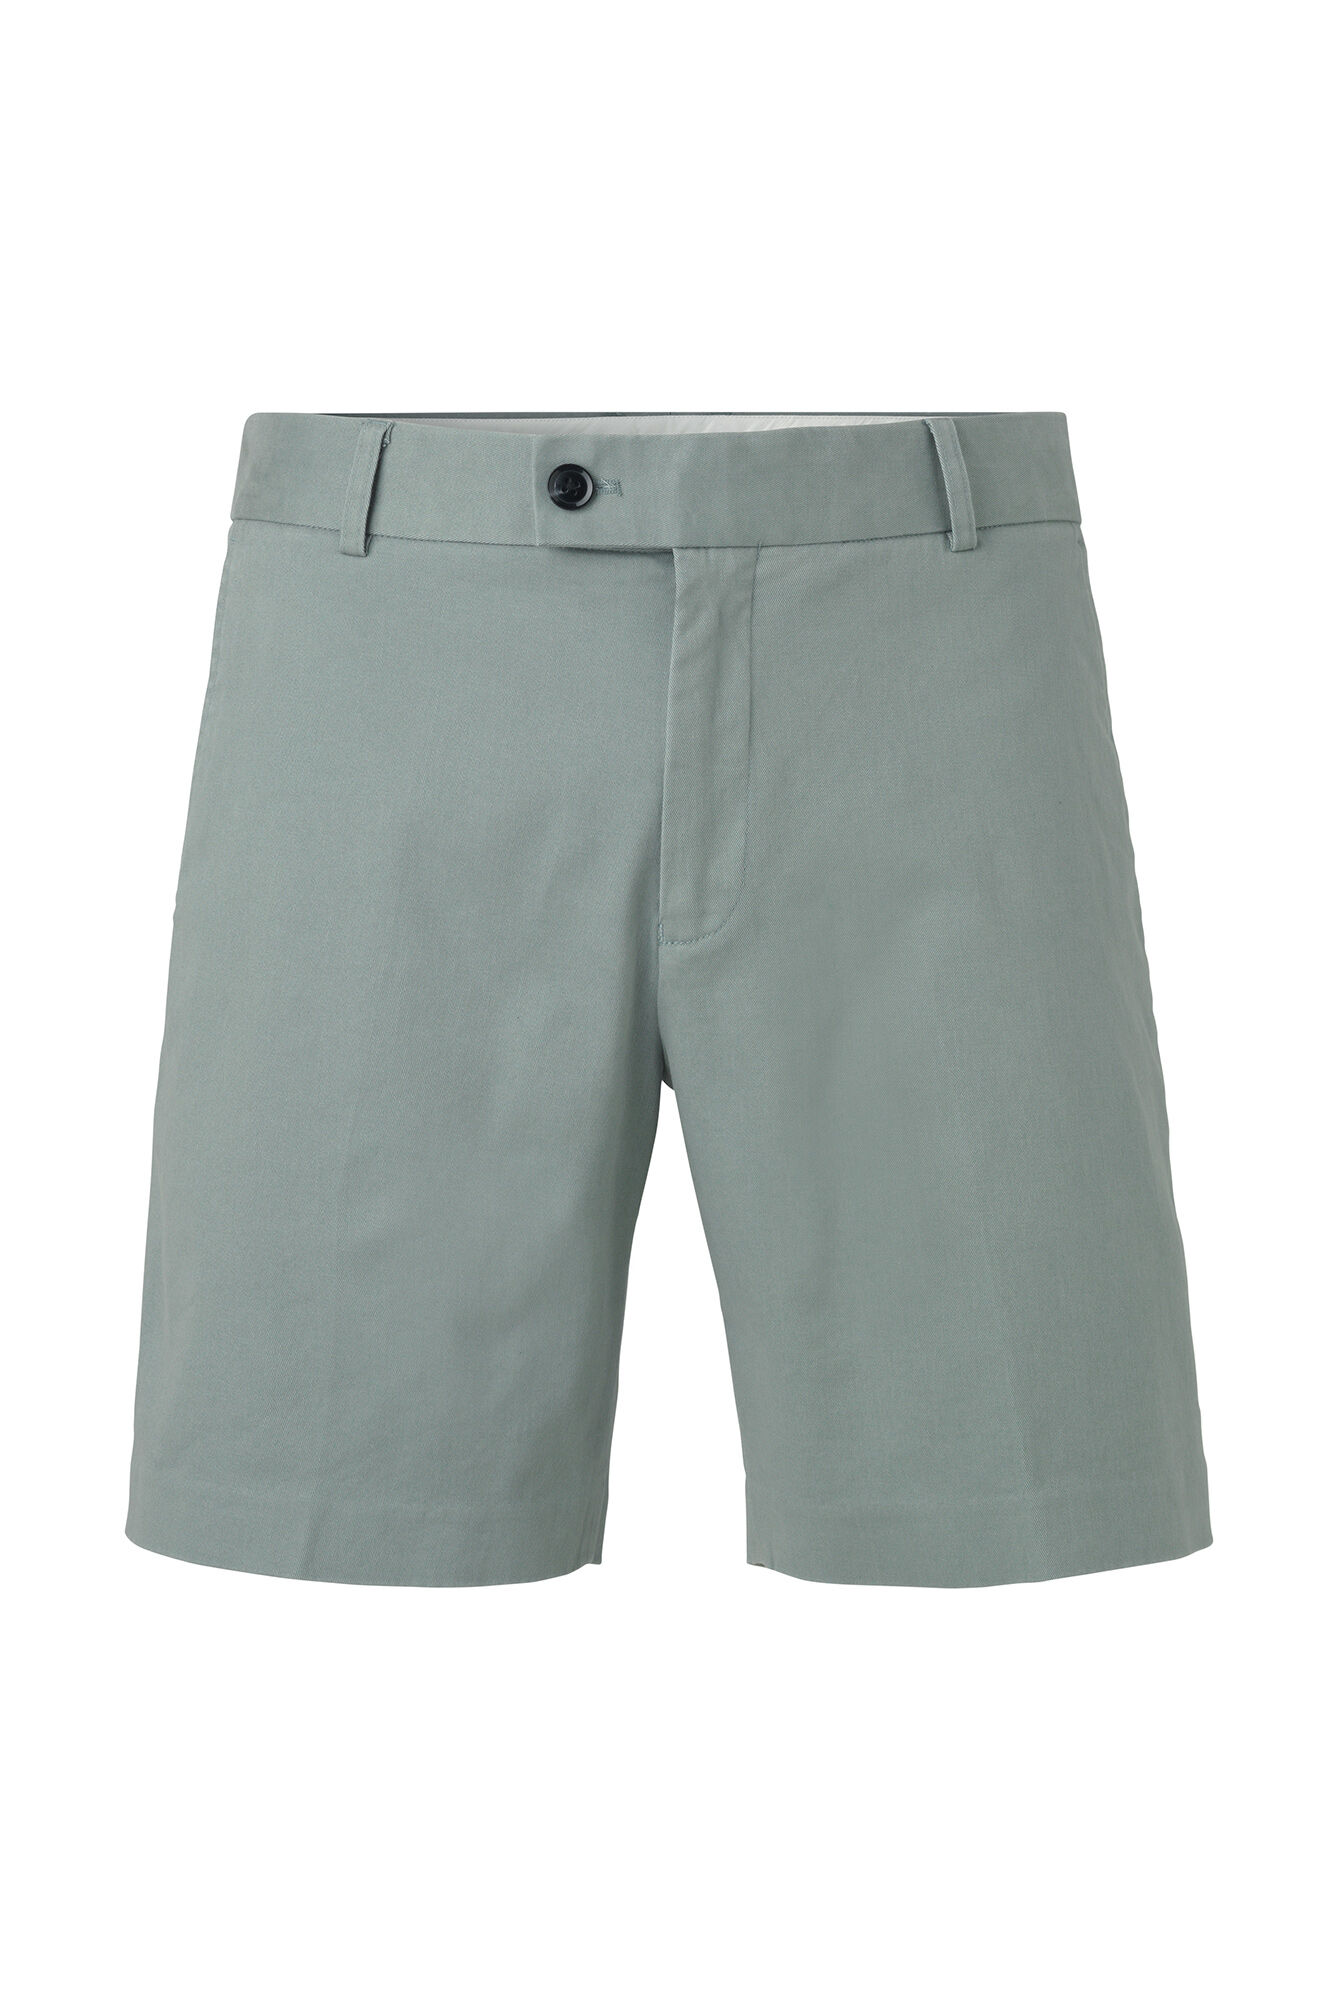 Laurent shorts 7636